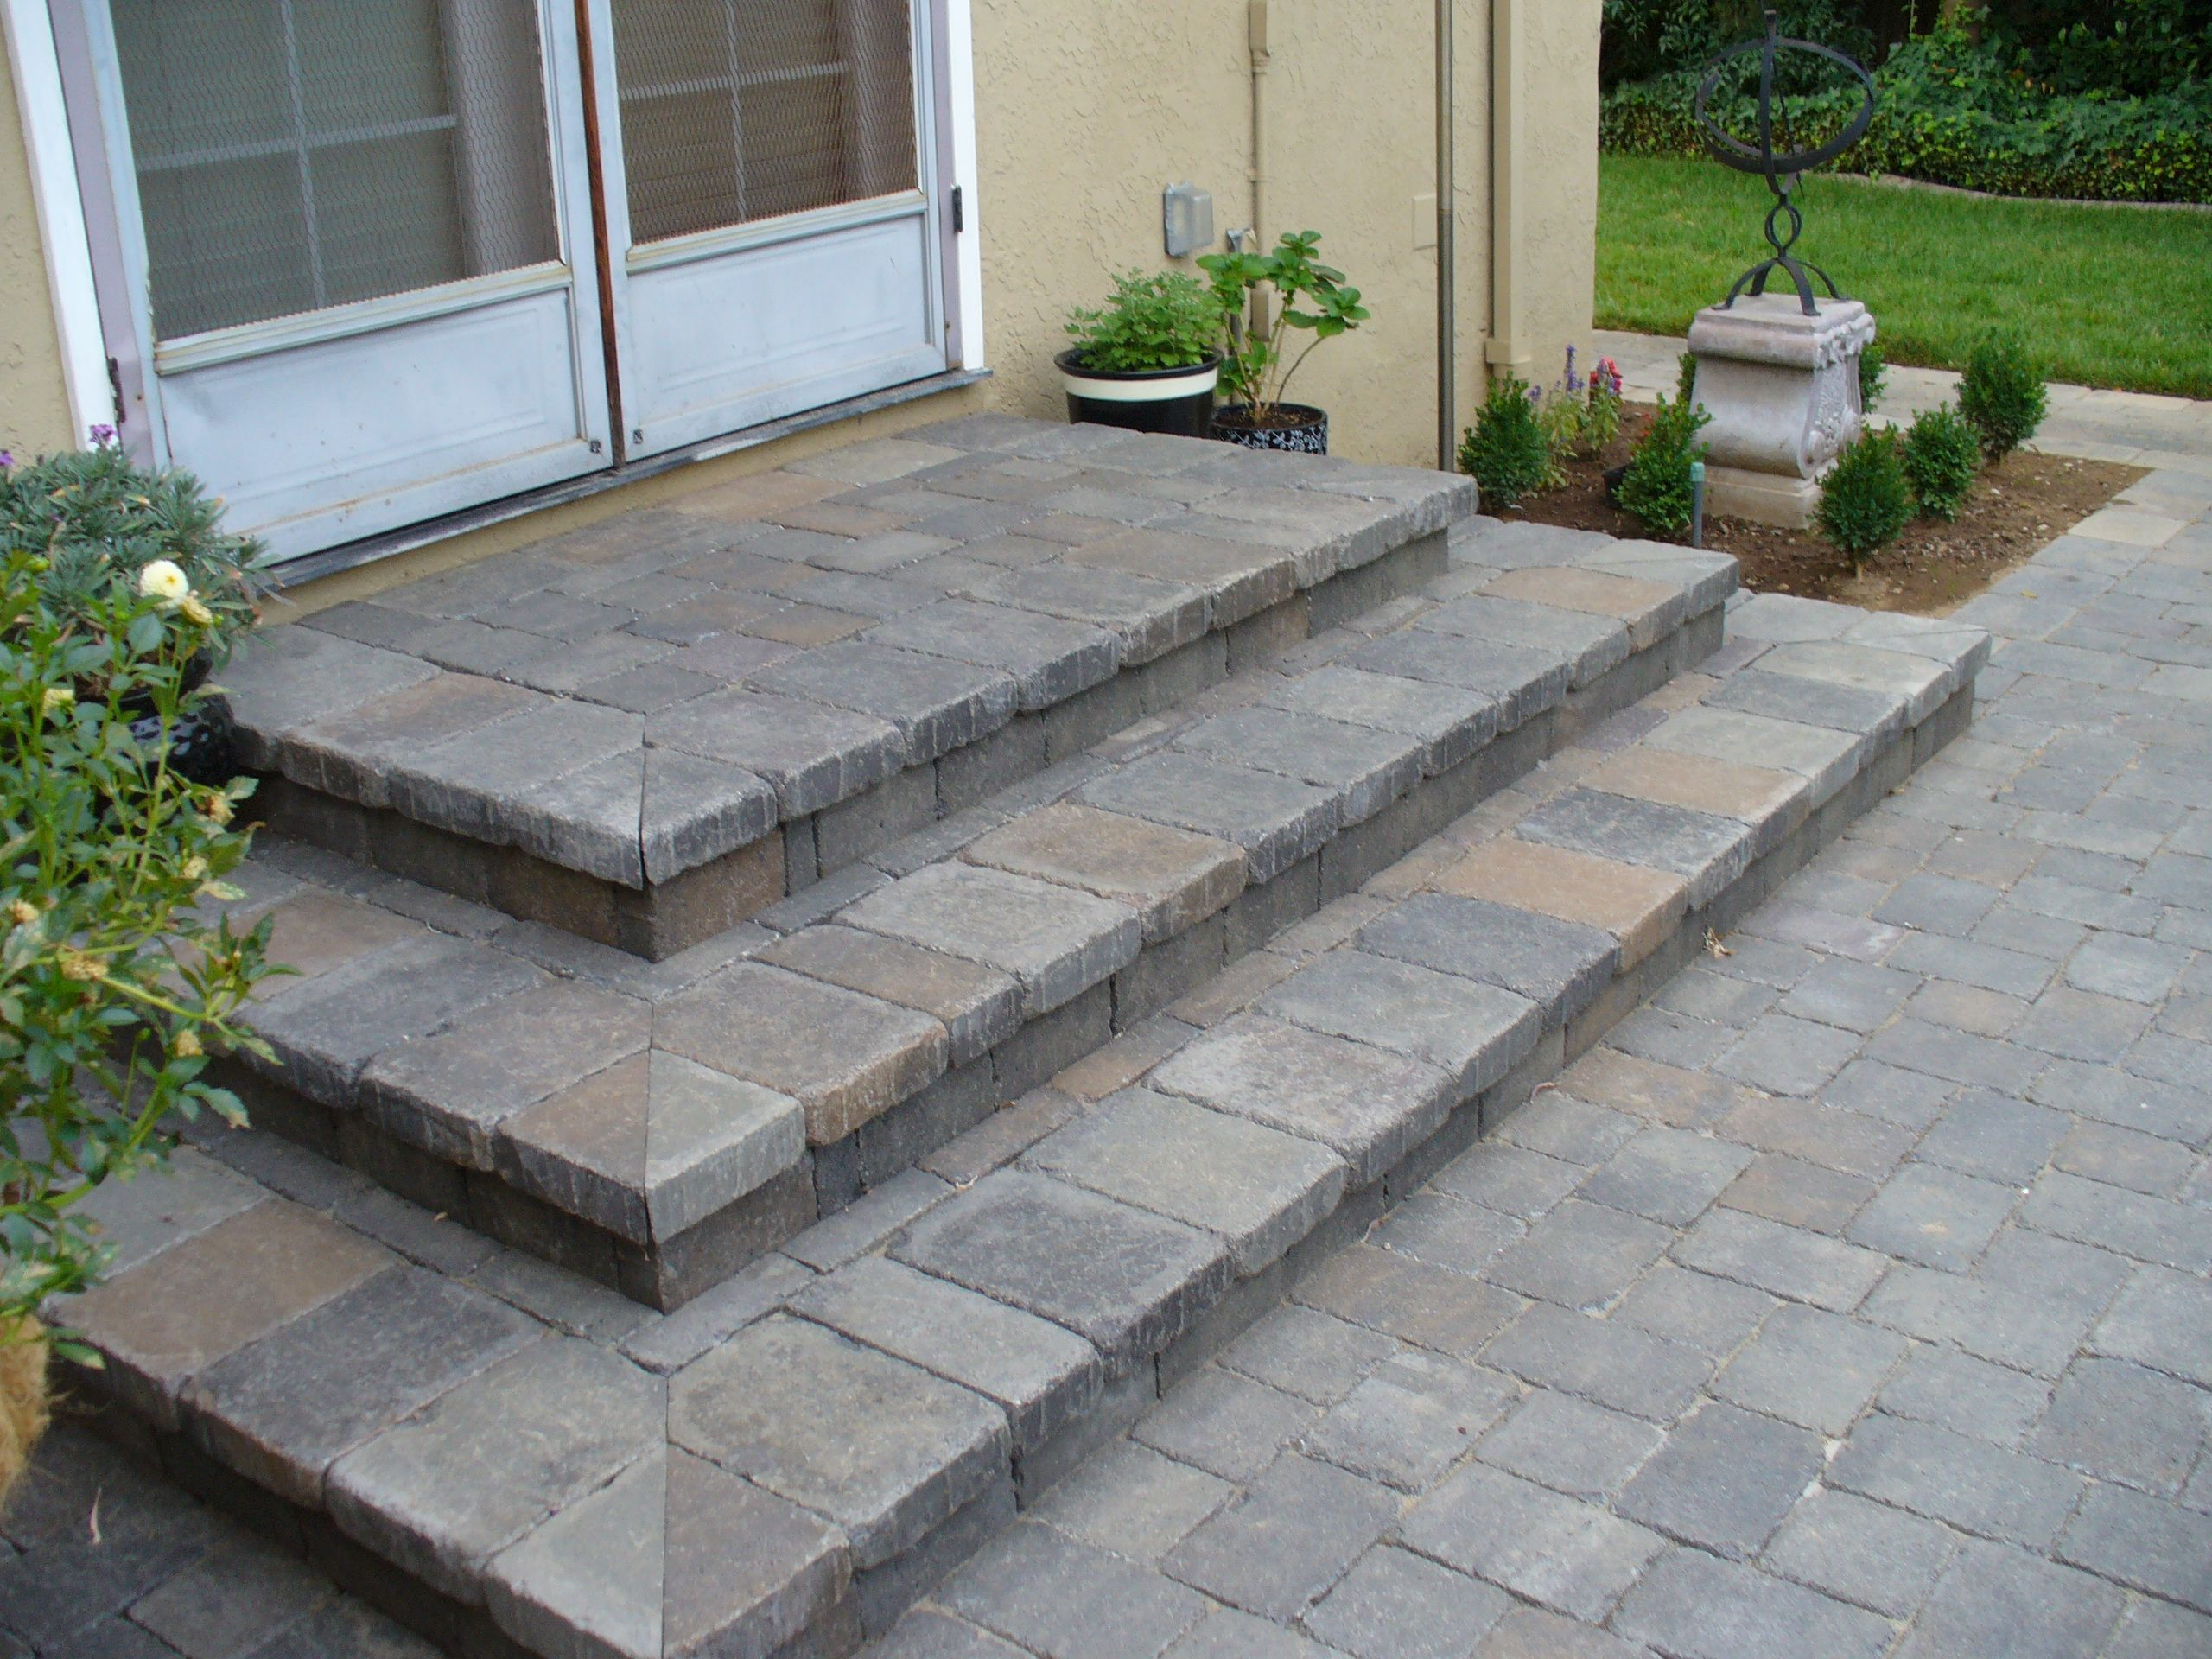 Thin Overlay Pavers How To Create A Paver Patio With Steps  Google Search  Home